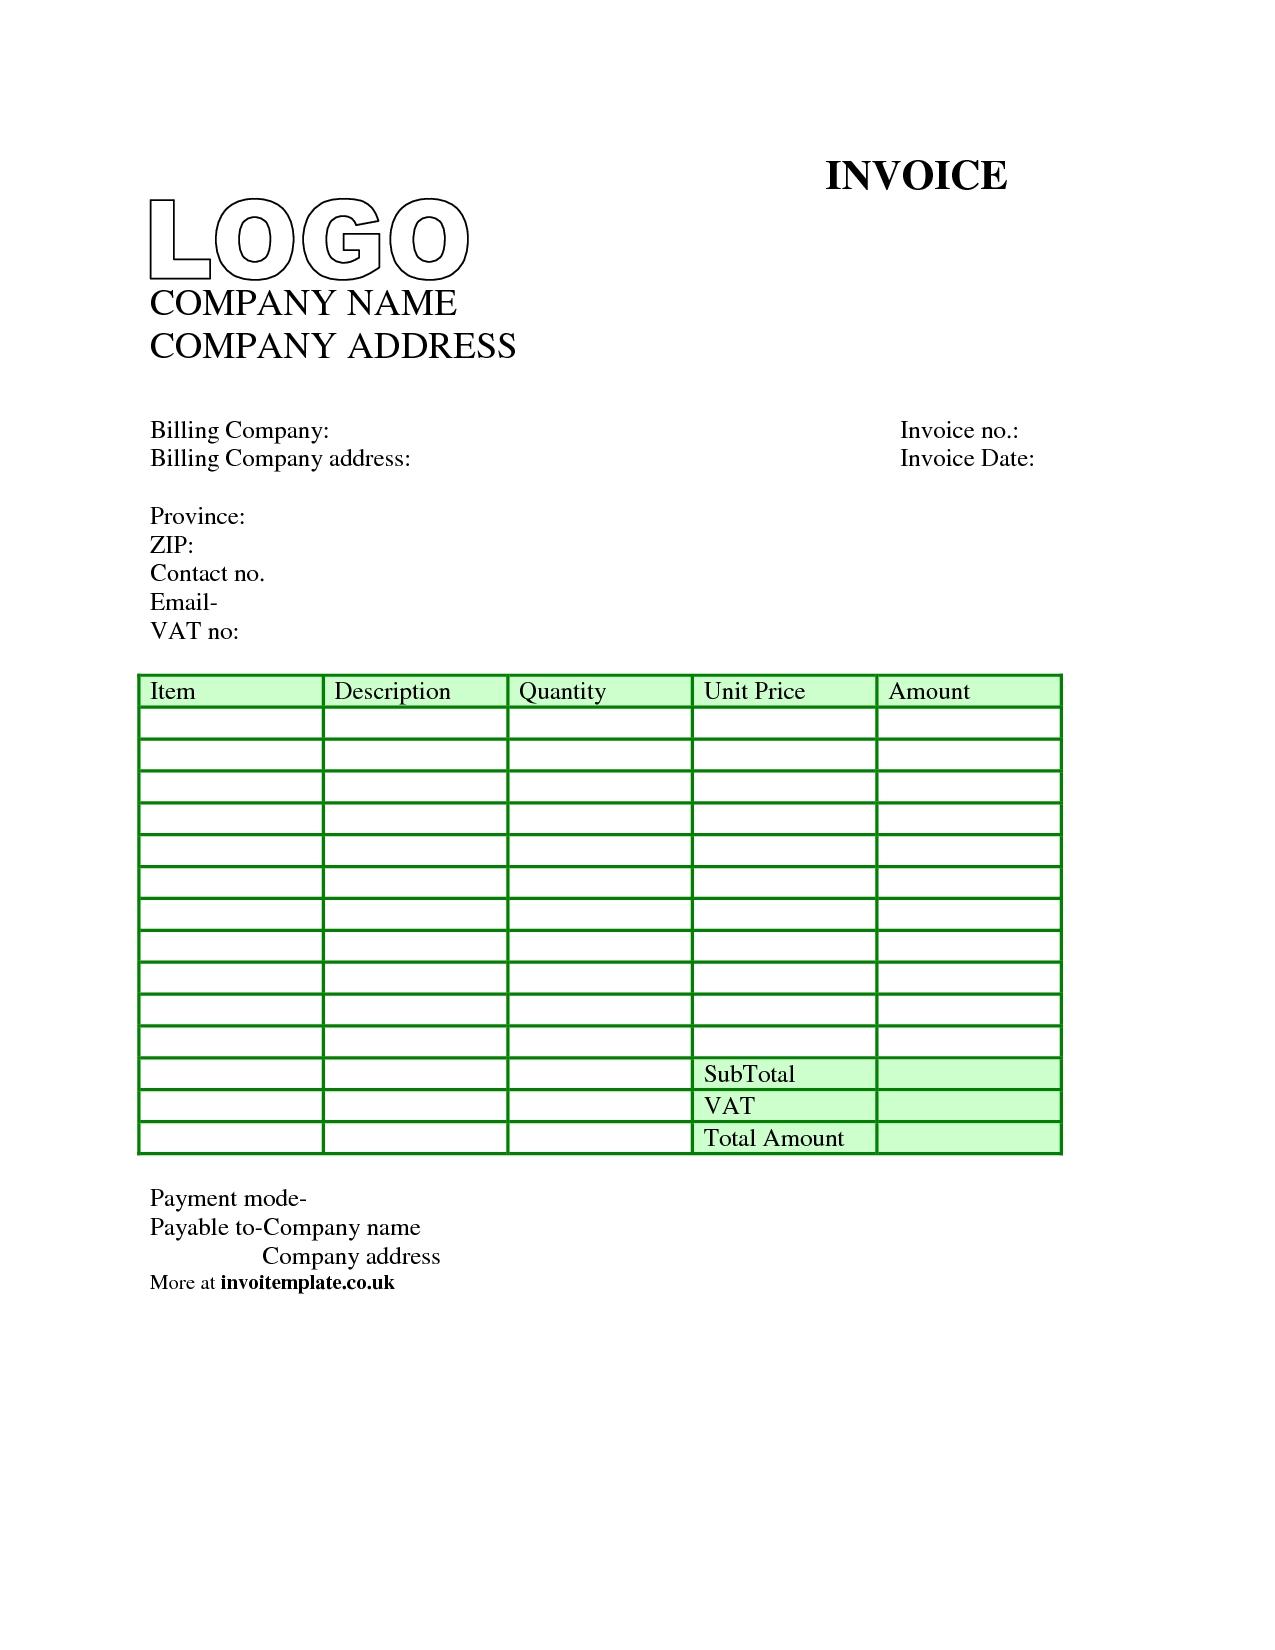 invoice template uk sole trader – notators, Invoice examples